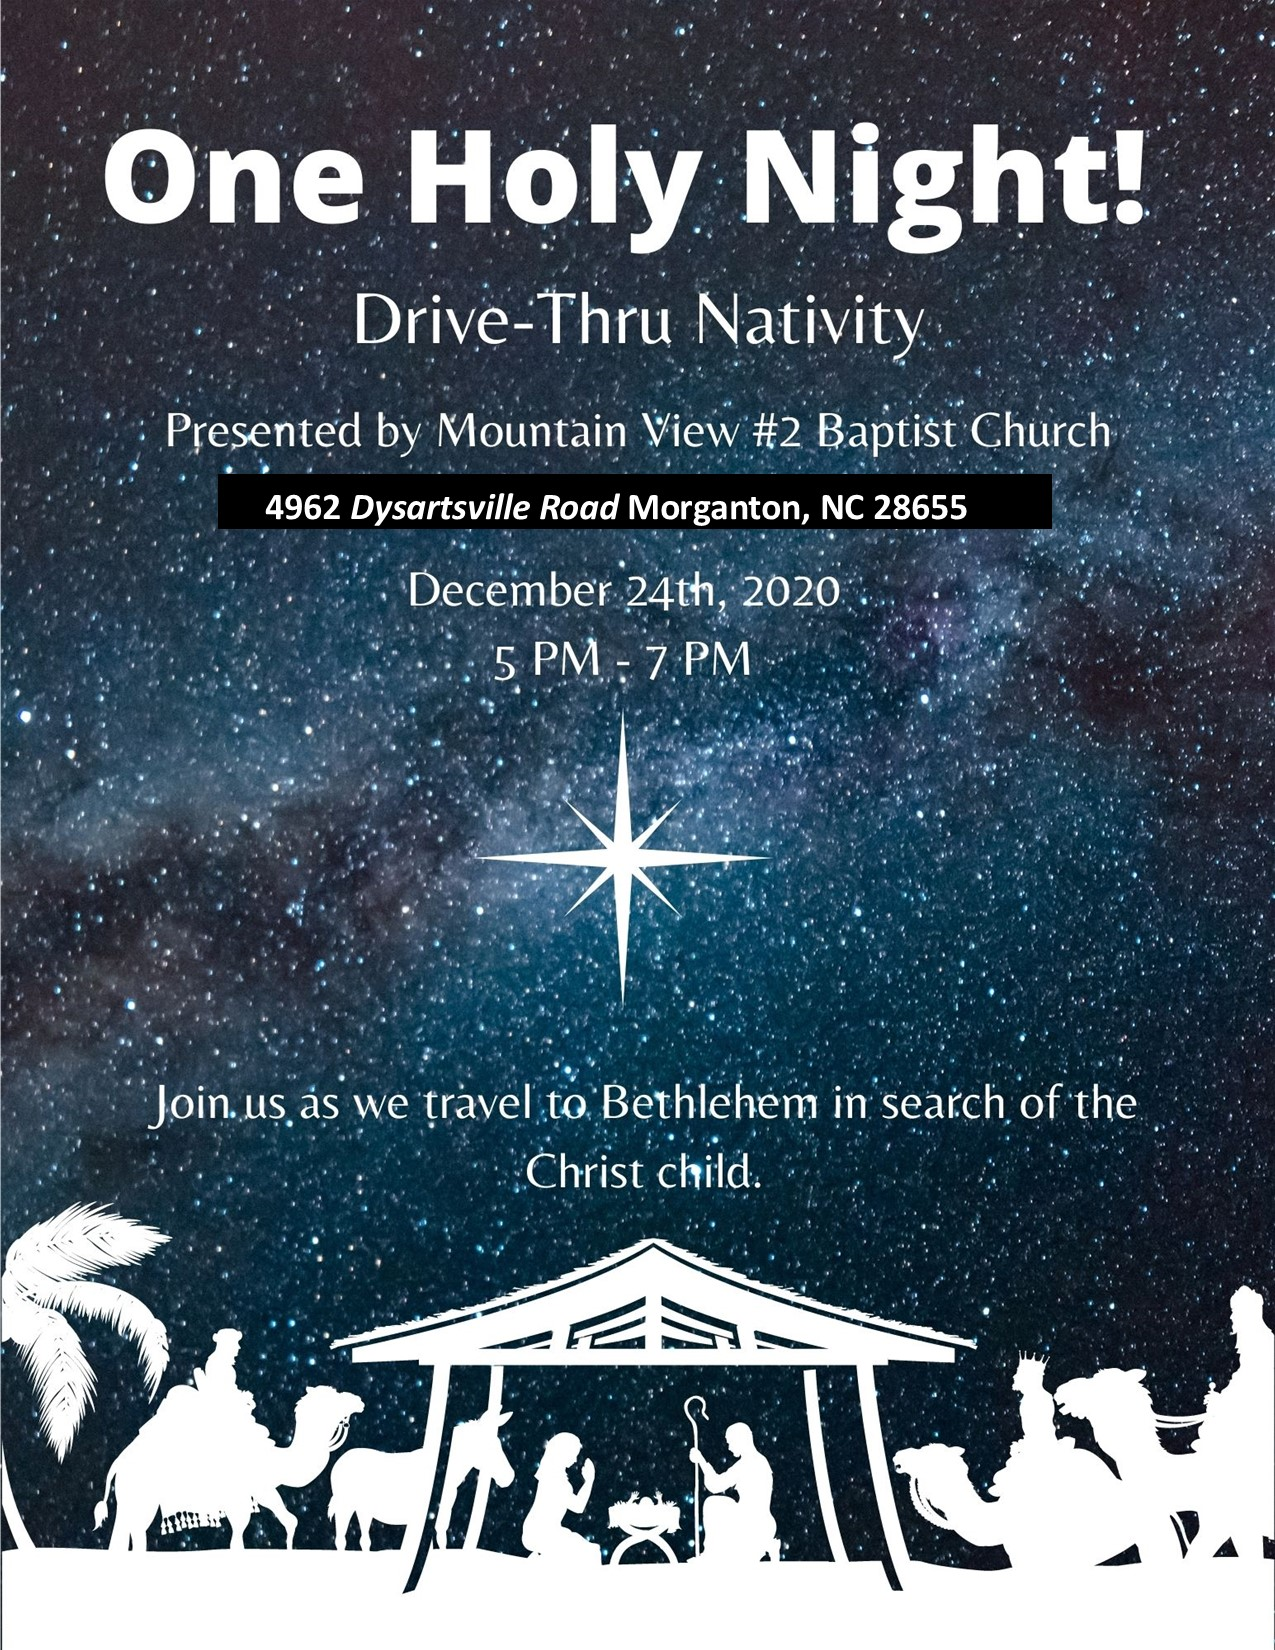 Mt.ViewOneHolyNight2020